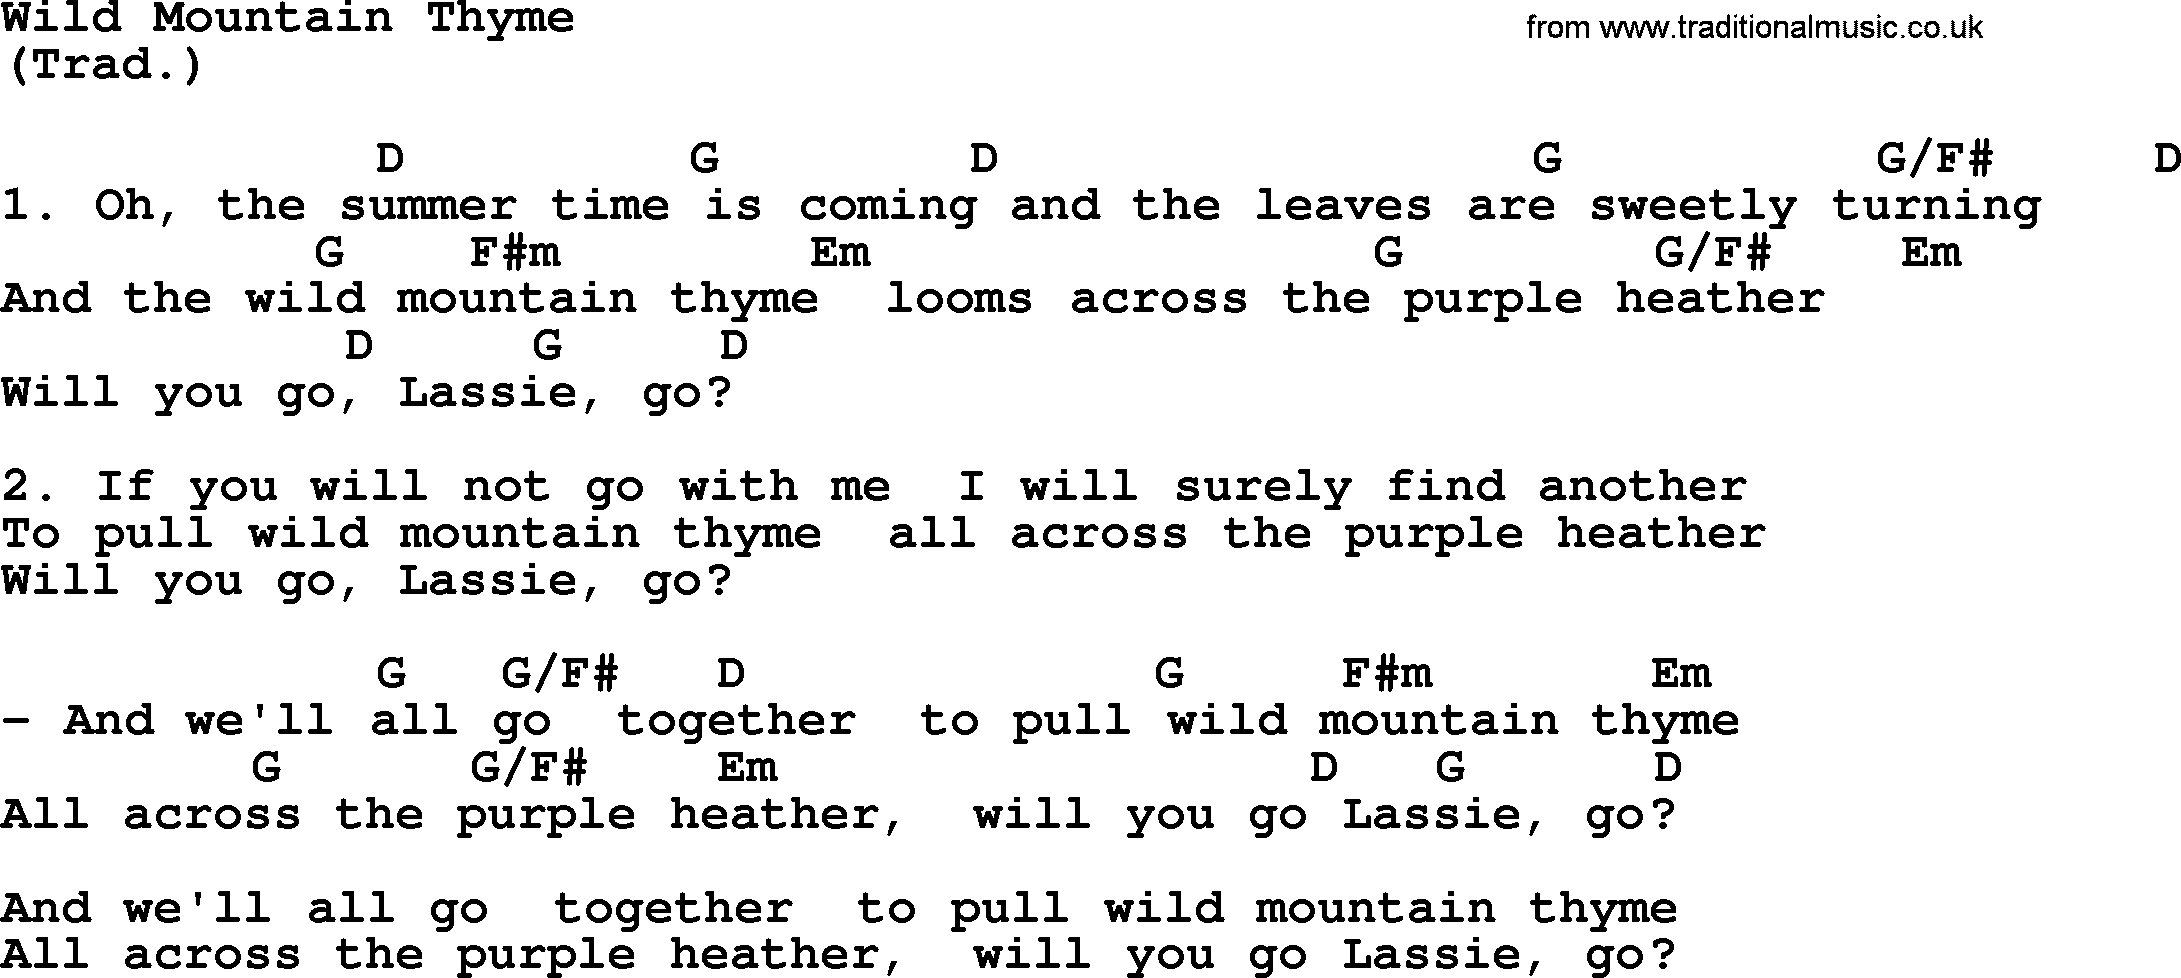 Wild Mountain Thyme Lyrics